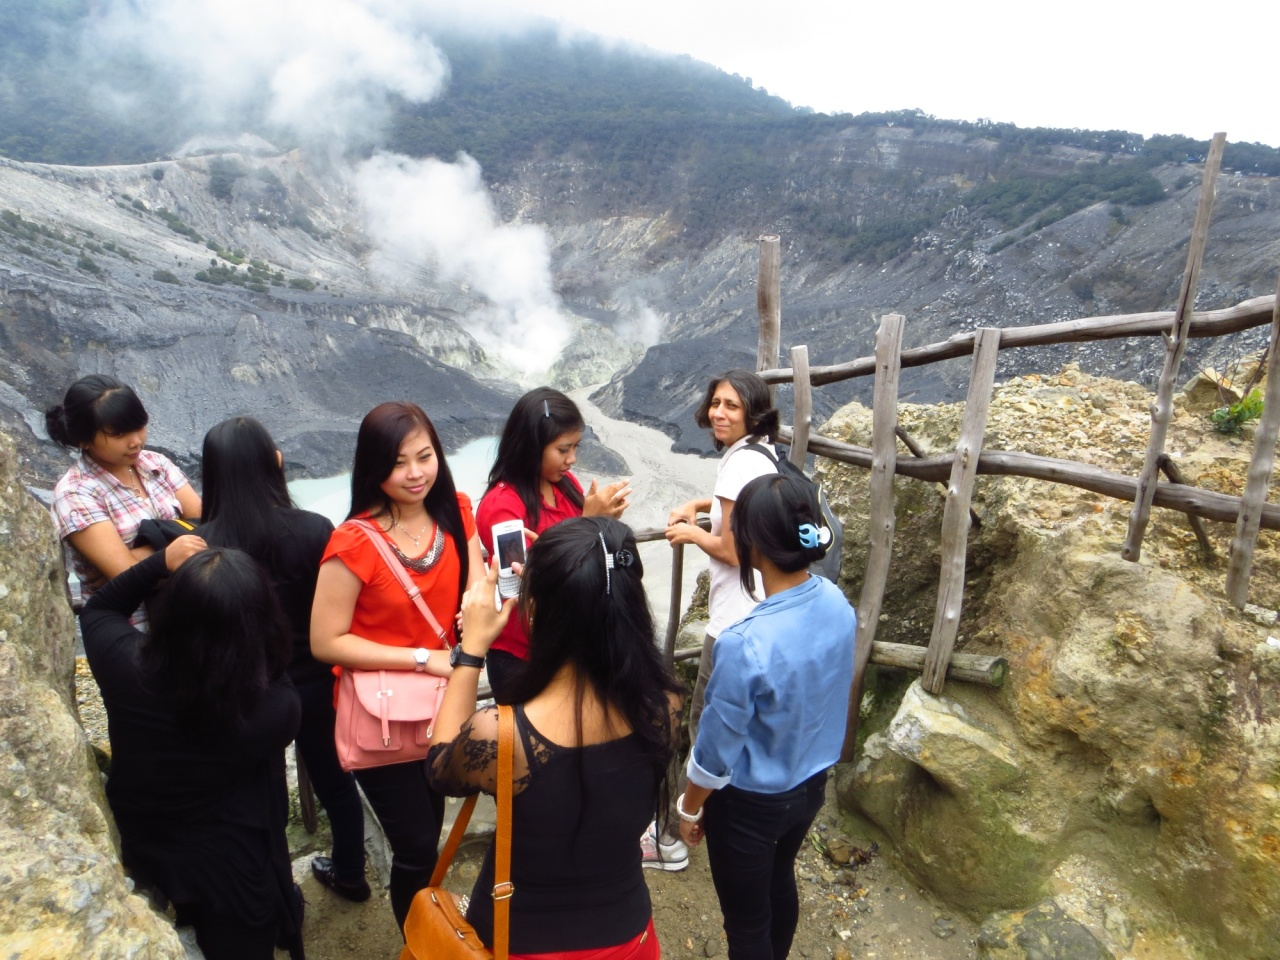 Uju at Tangkuban Perahu